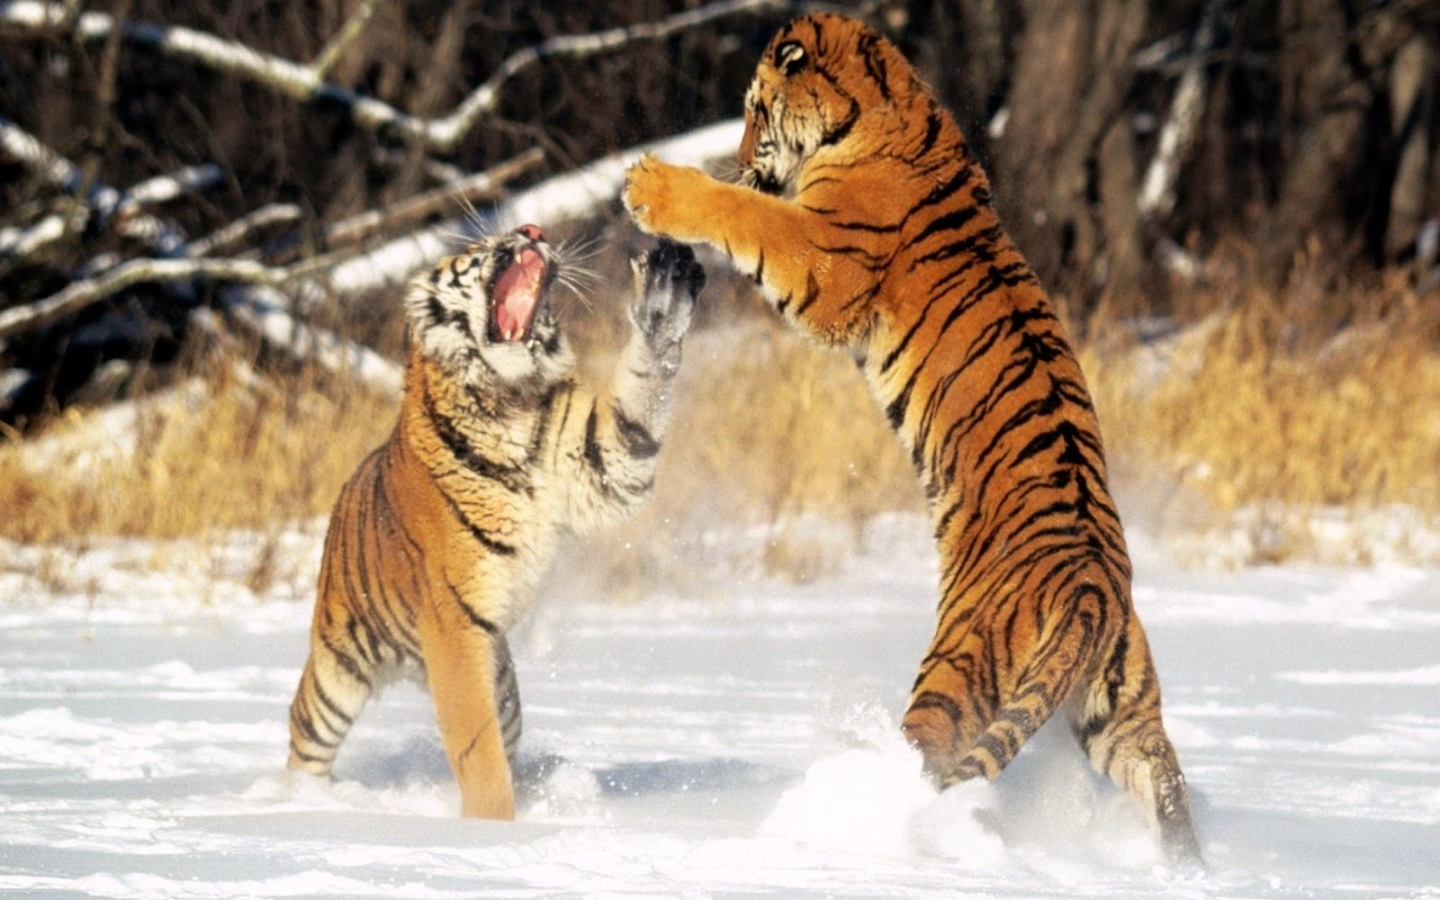 40137 download wallpaper Animals, Tigers screensavers and pictures for free